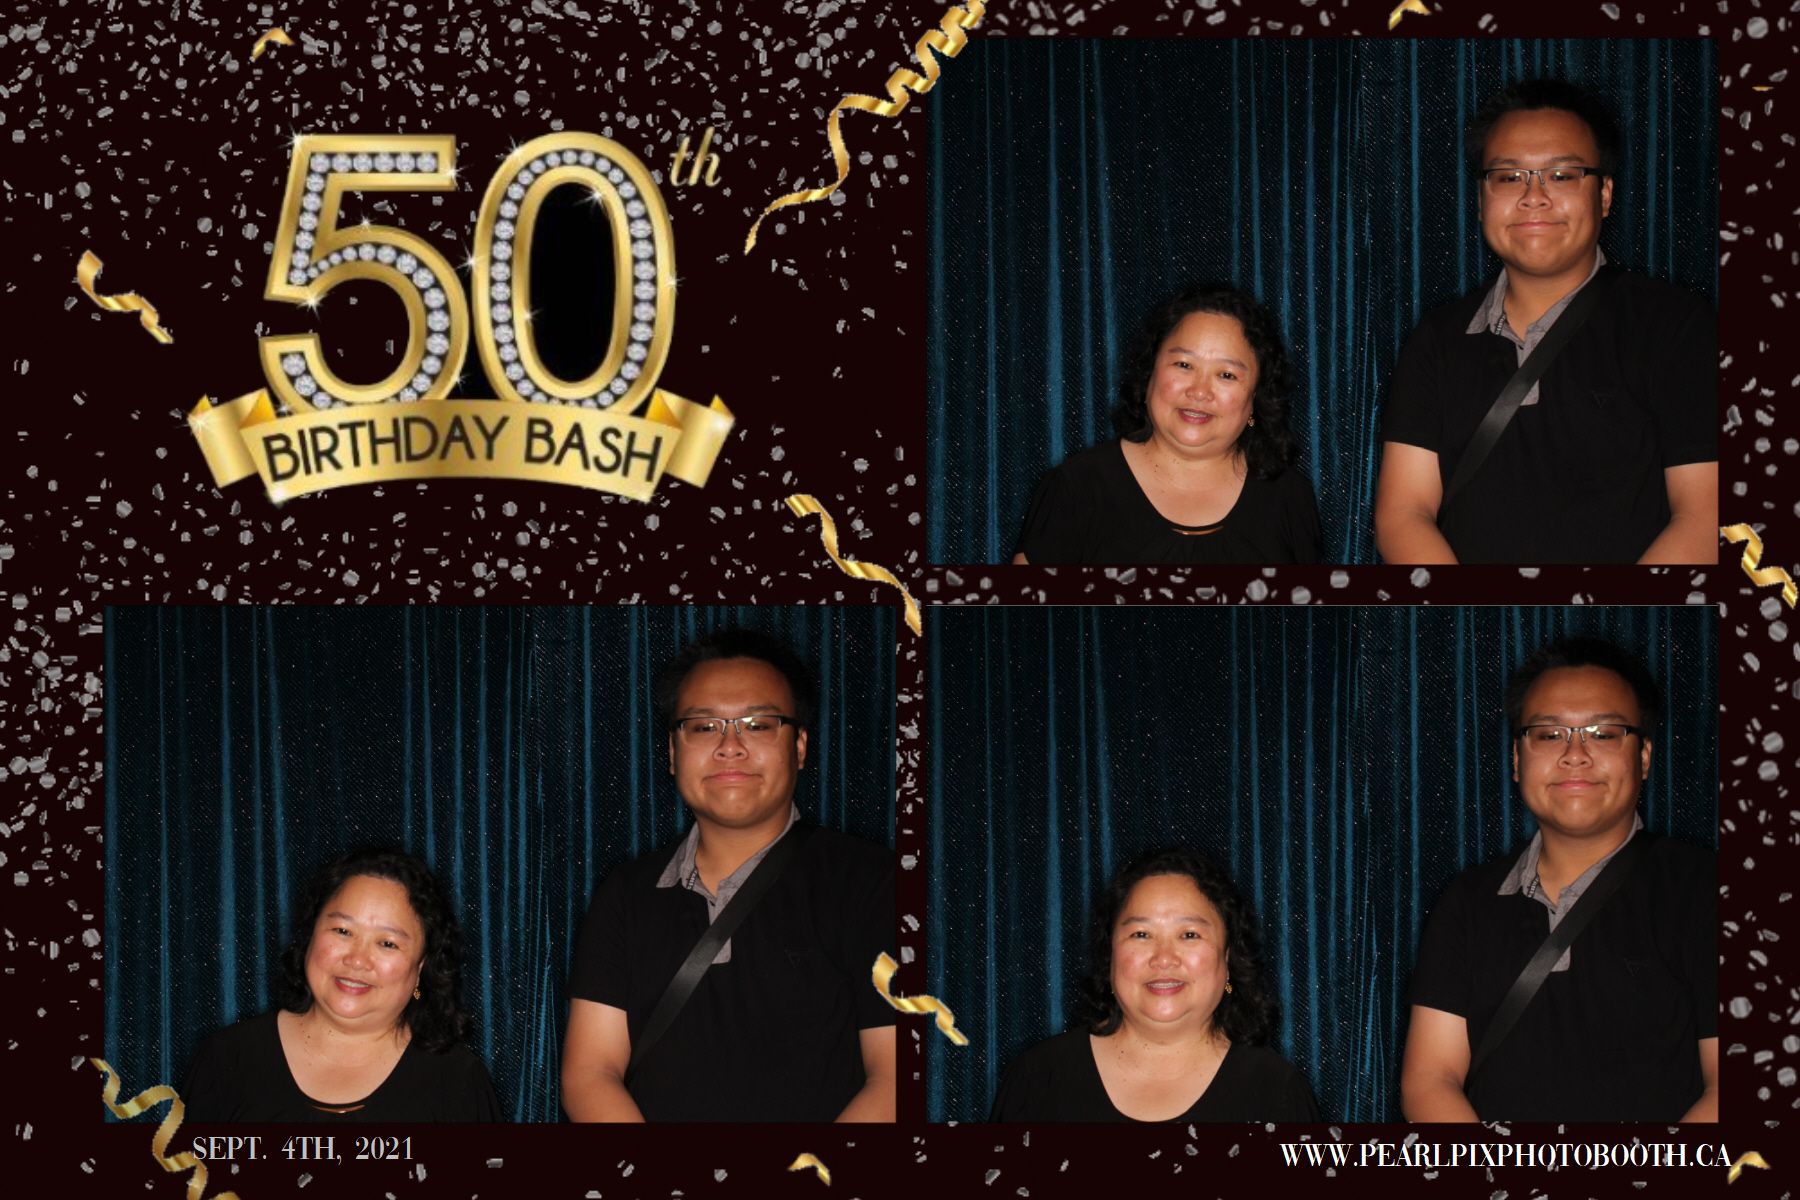 Peter_s 50th Bday_15